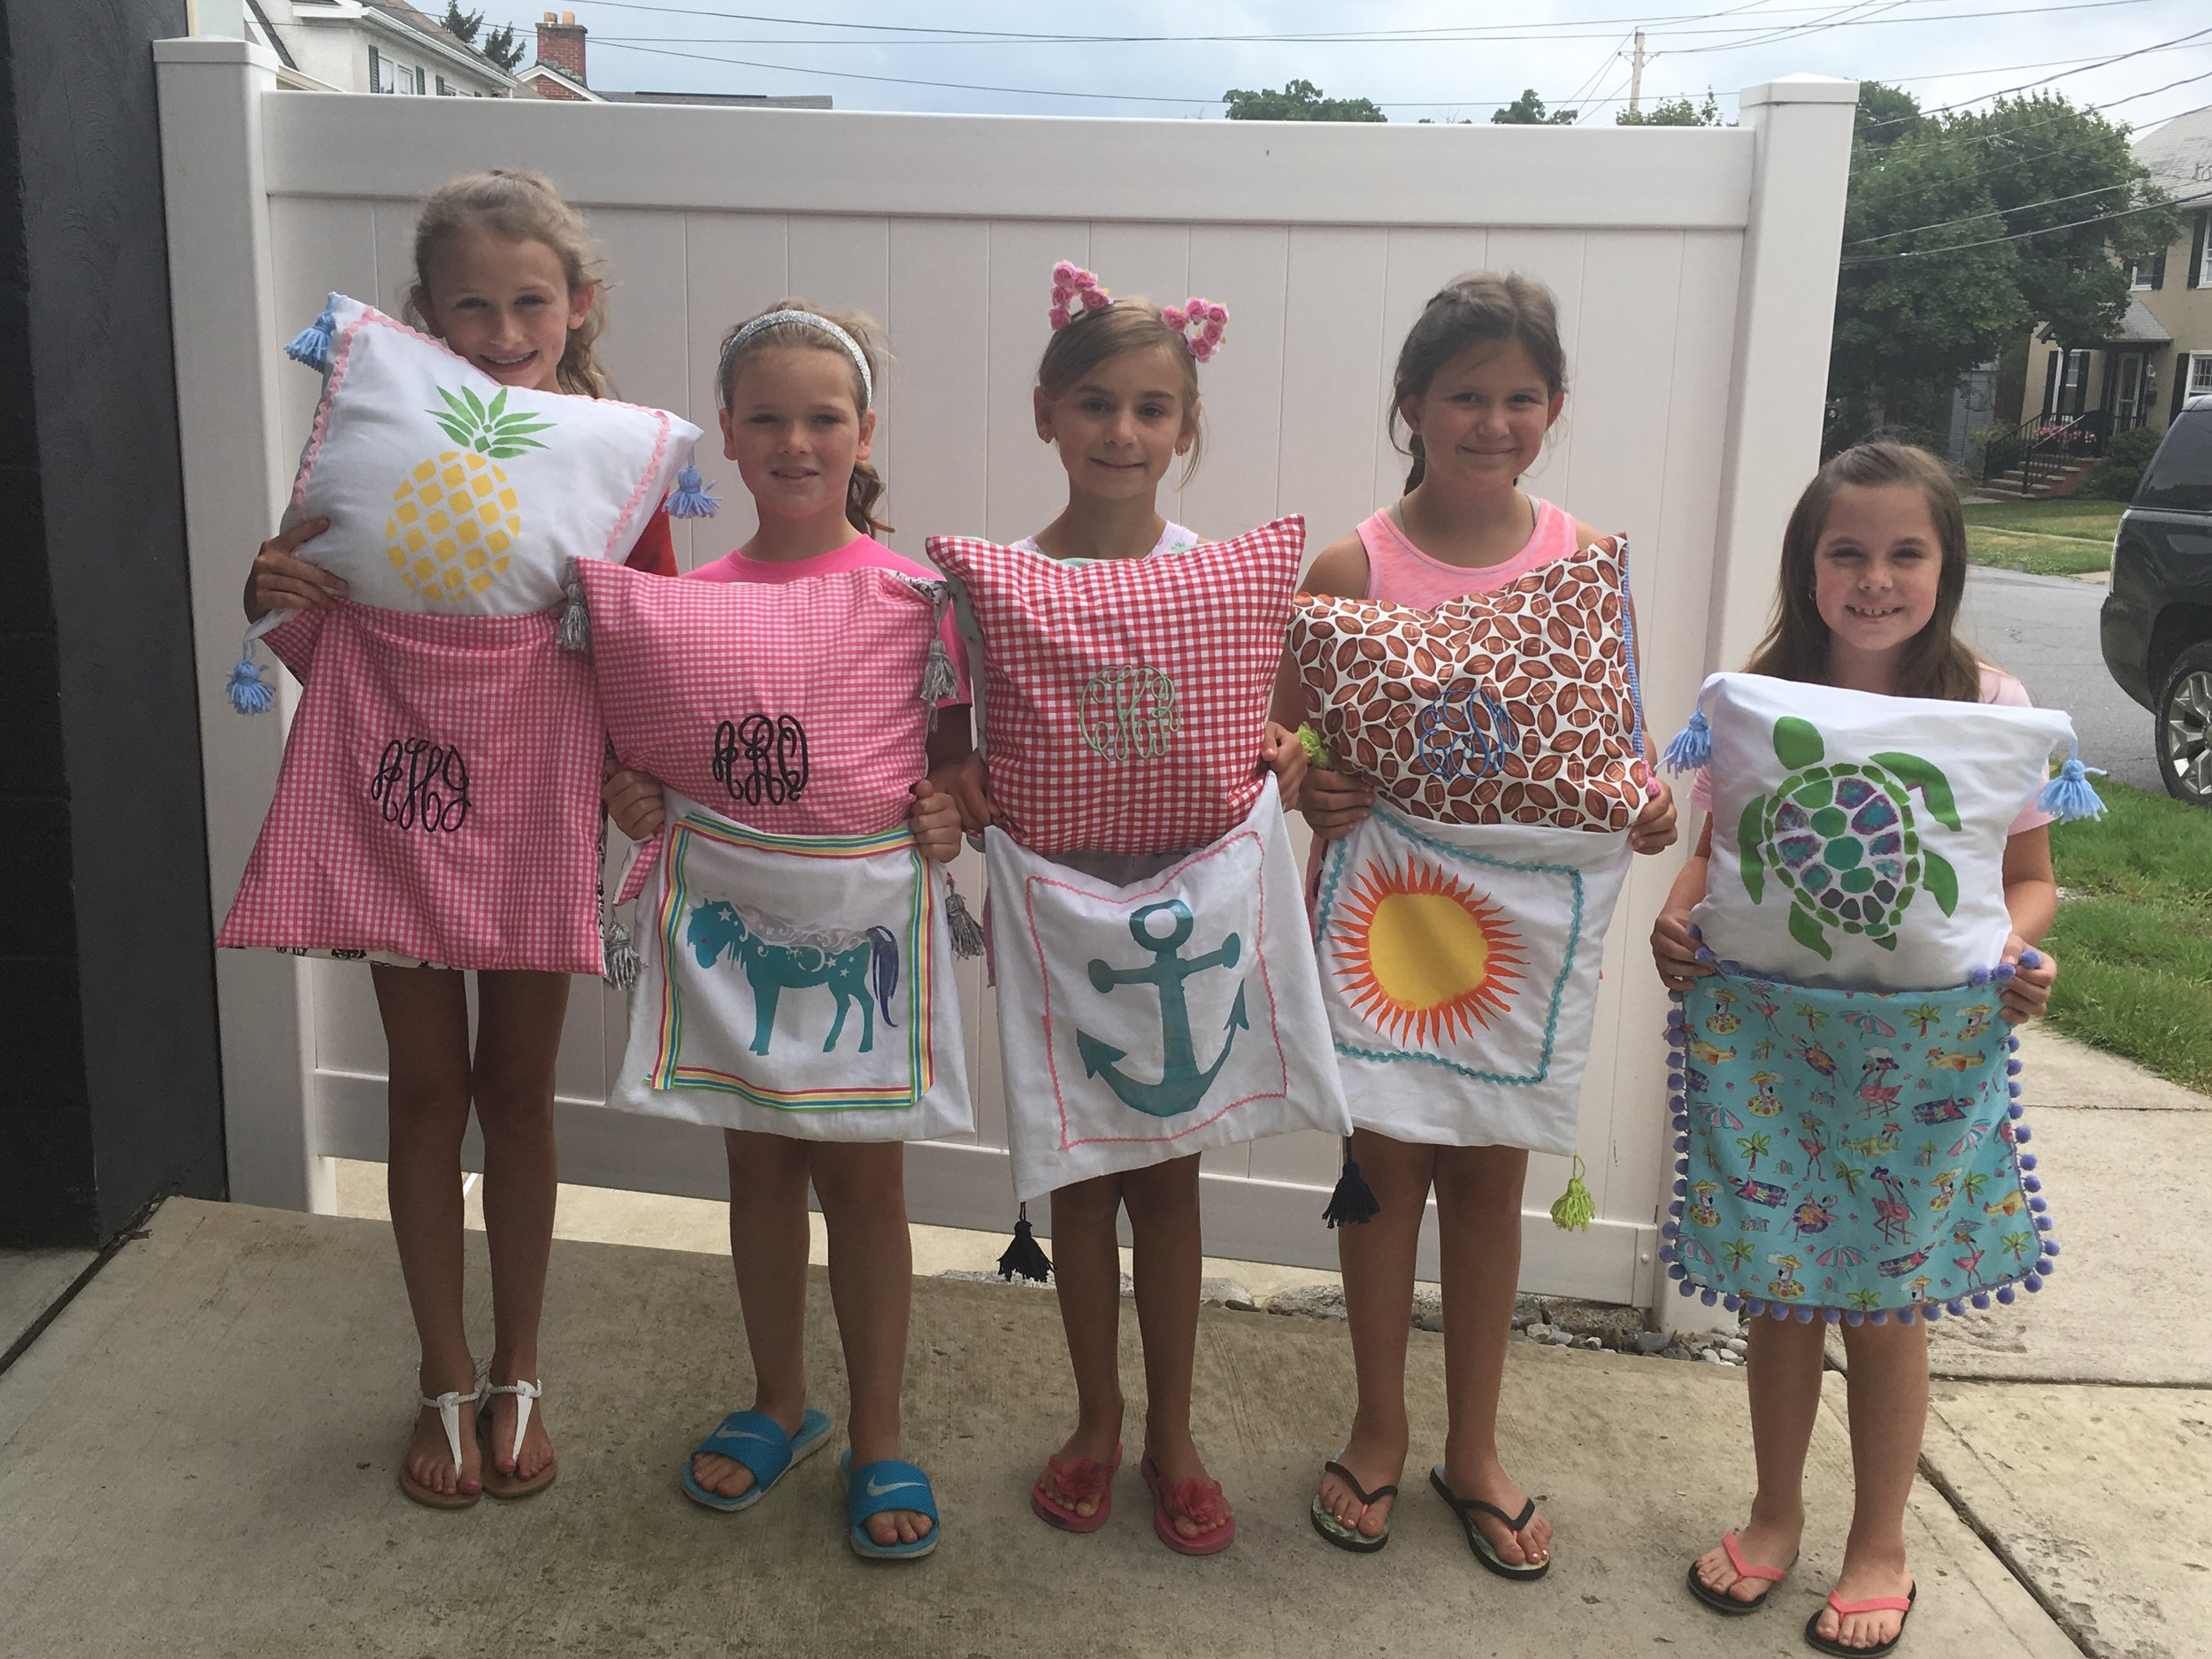 Sew much fun at Little Crafting Studio -